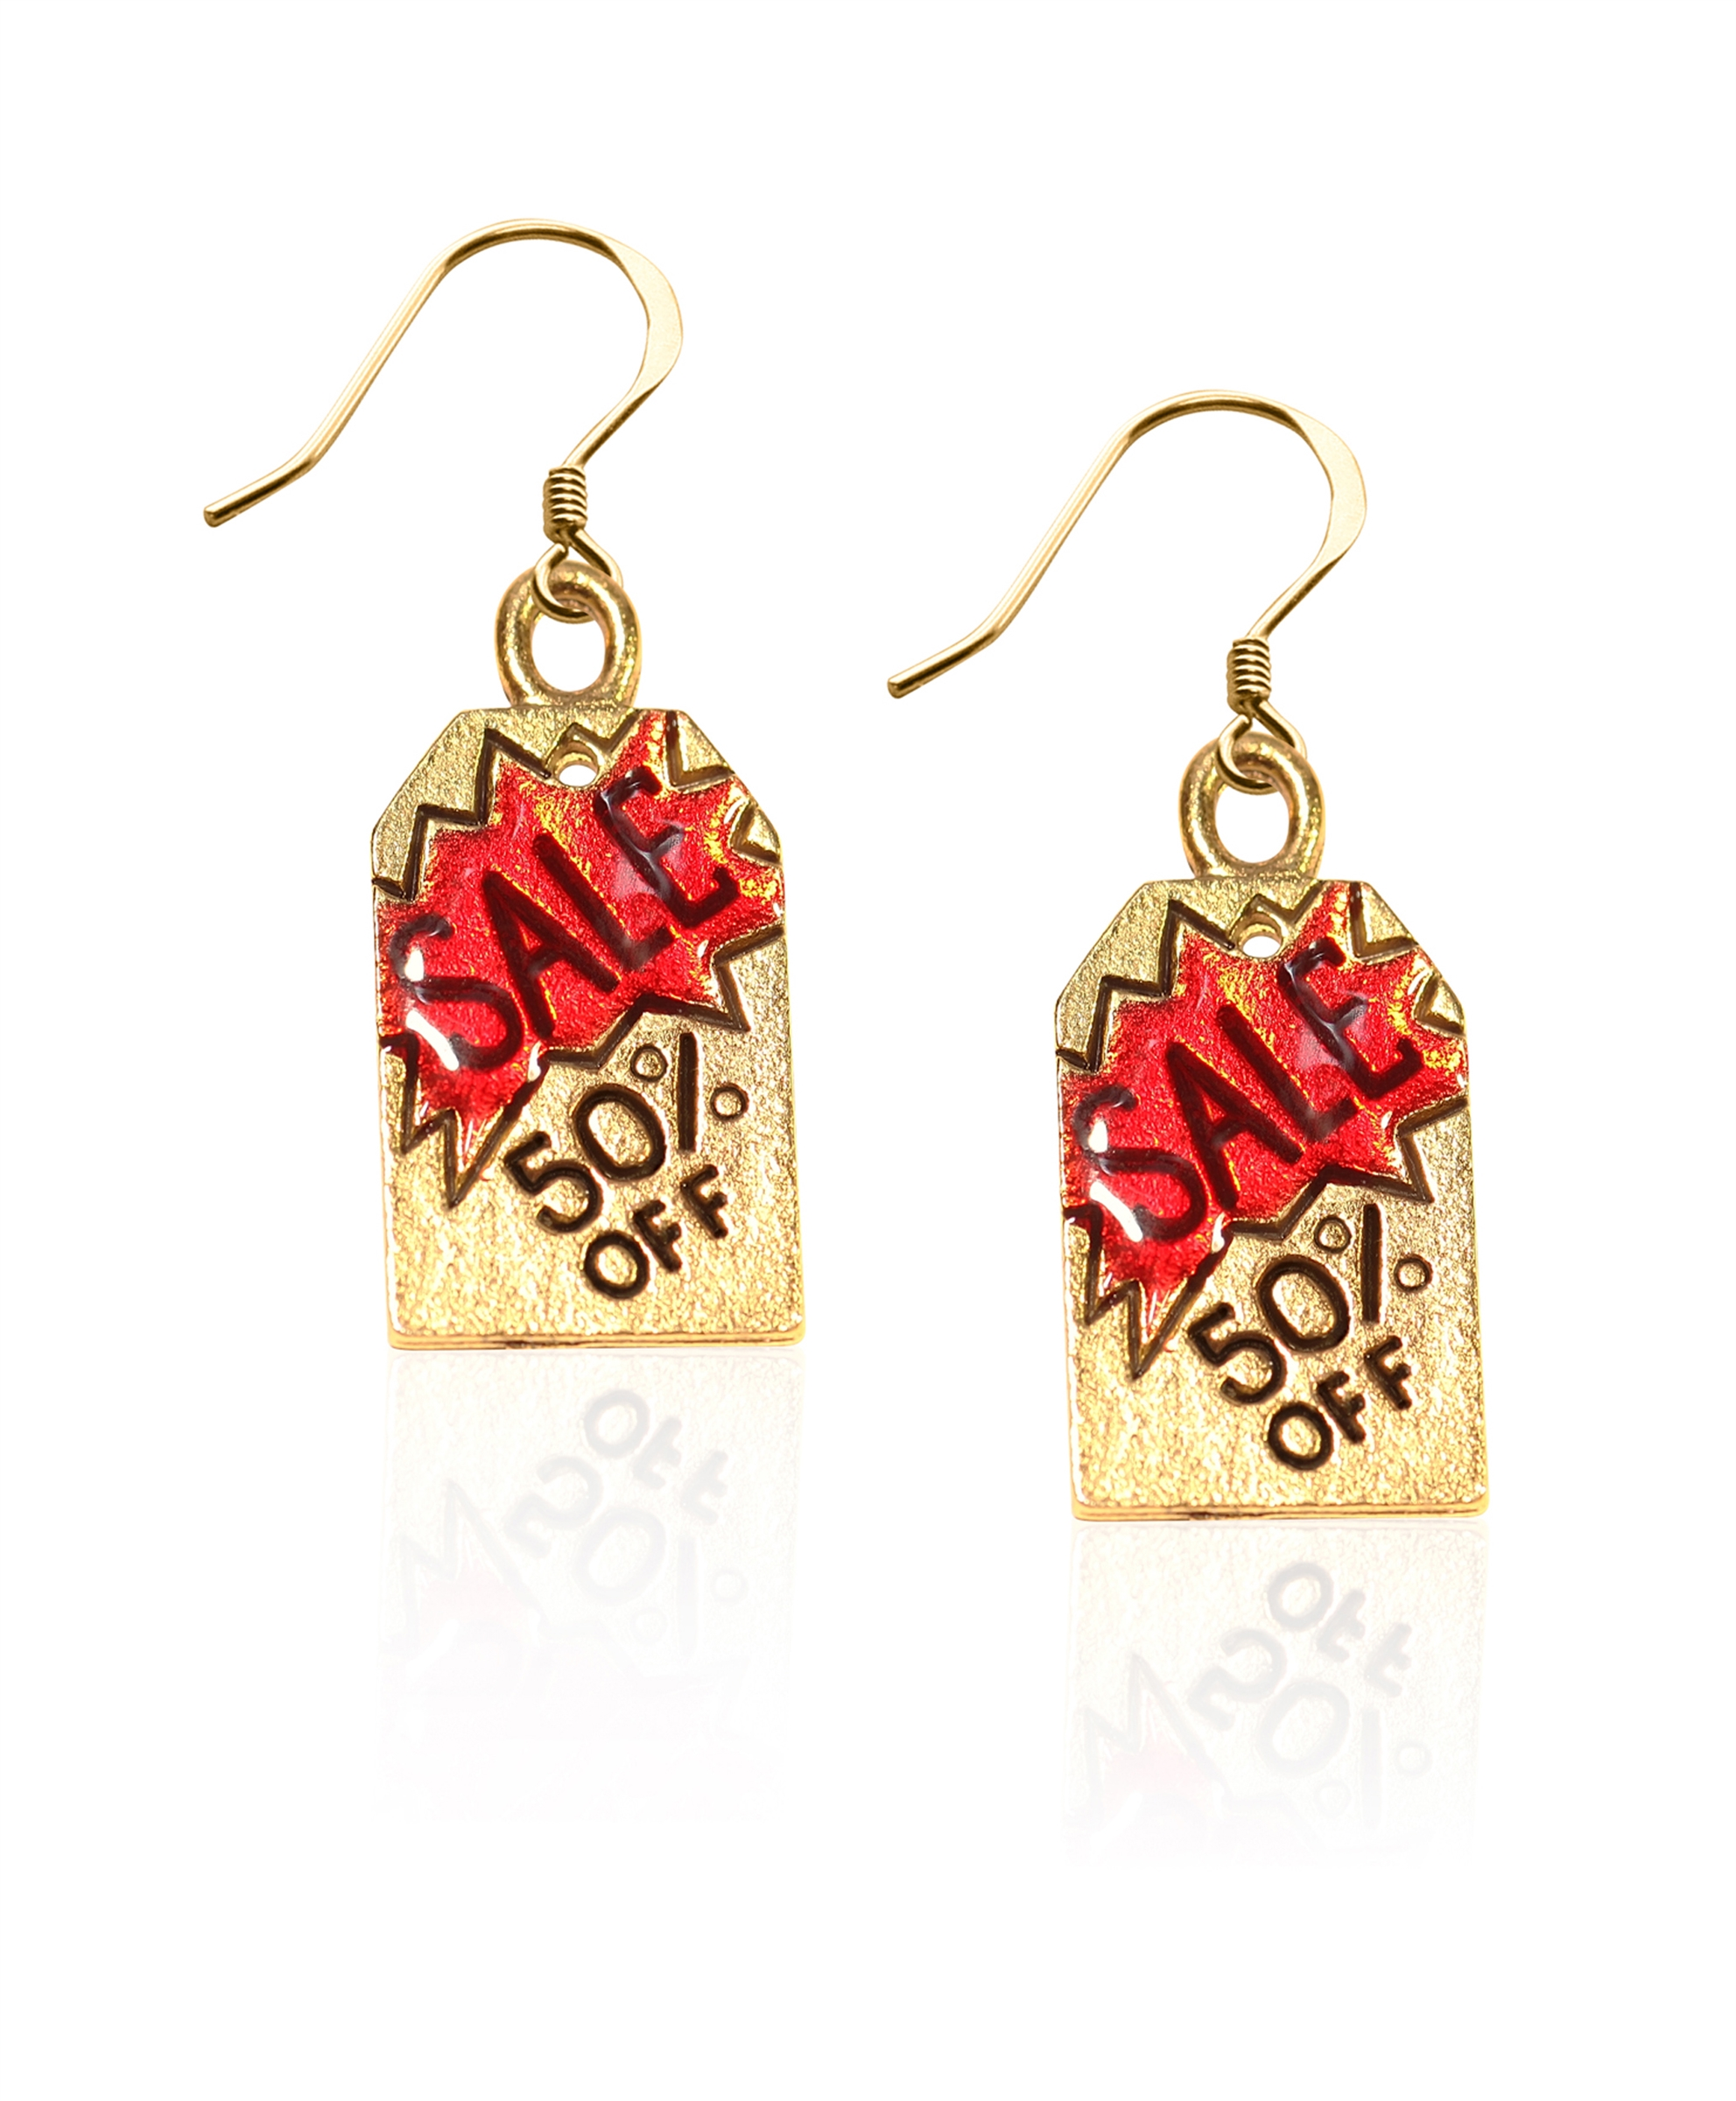 Image of 50% Off Sales Tag Charm Earrings in Gold